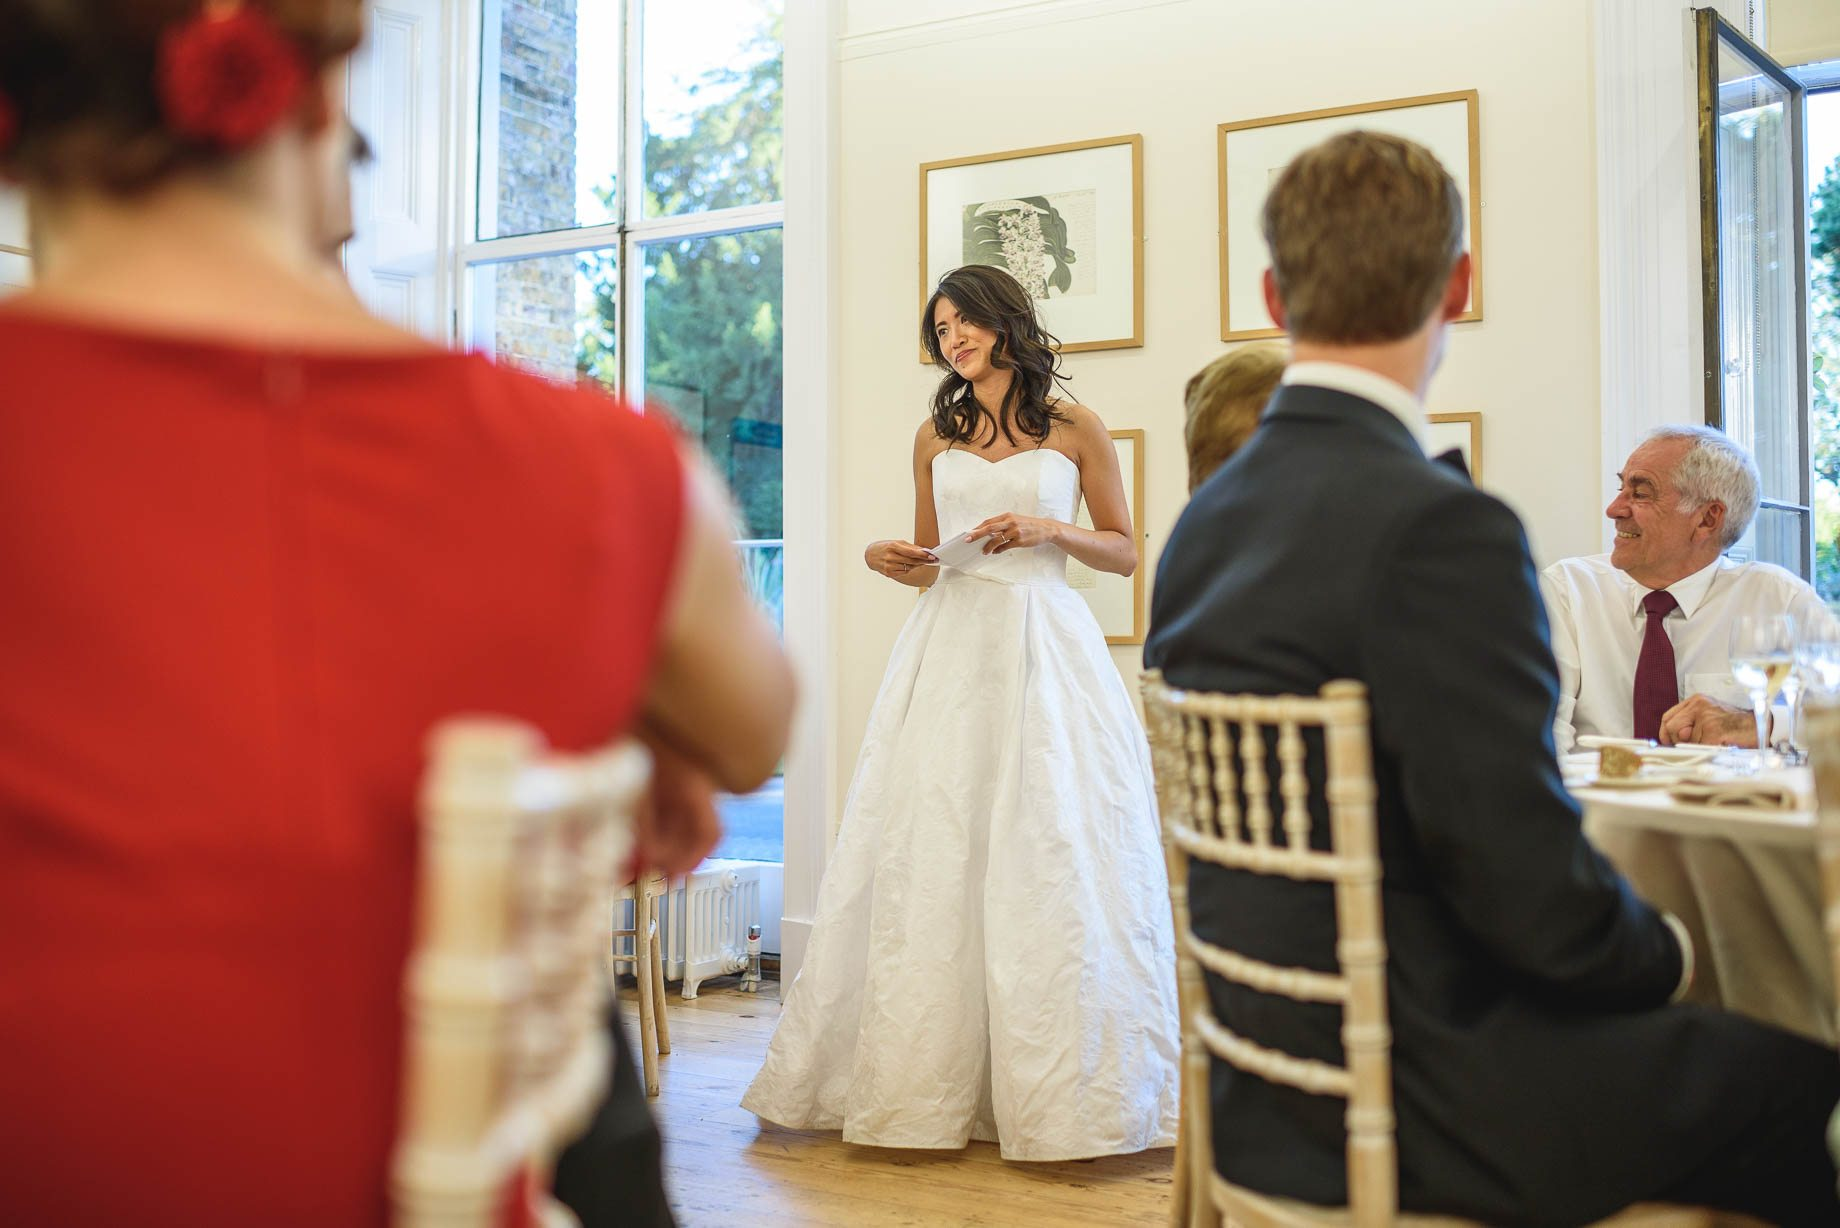 Kew Gardens wedding photography - Guy Collier Photography - Gloria and Frederik (128 of 173)